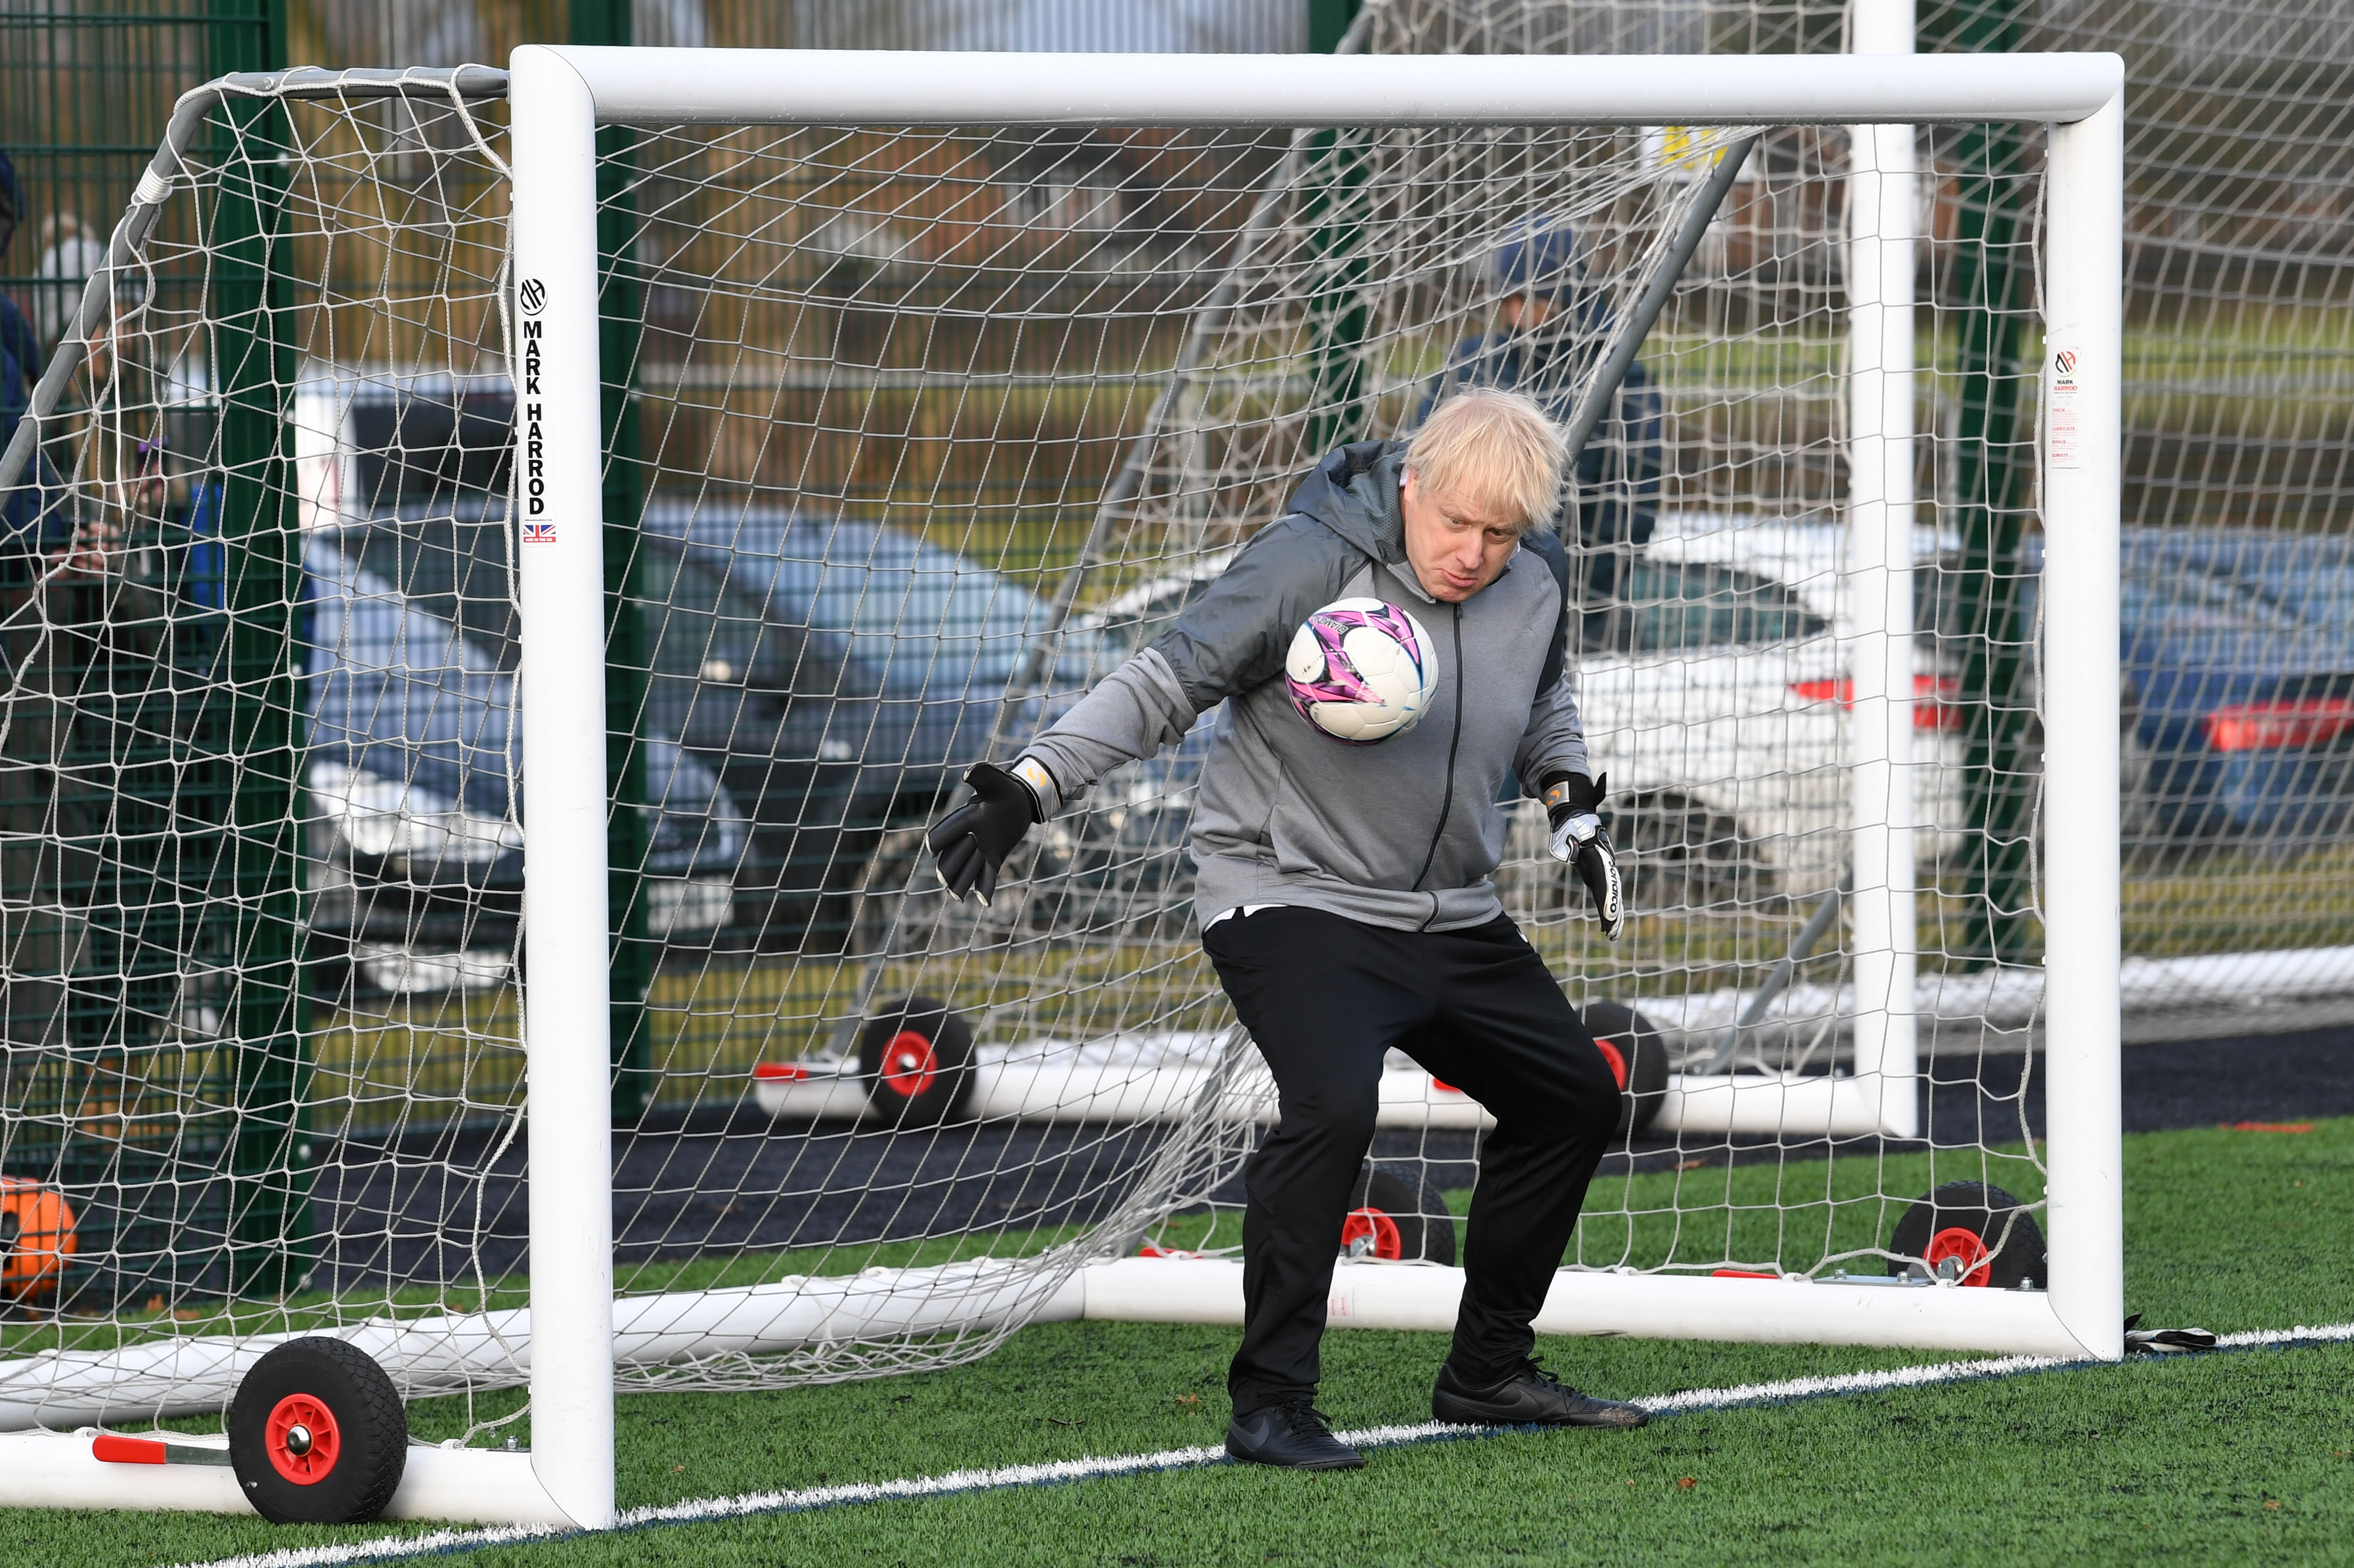 Prime Minister Boris Johnson tries his hand in goal before a football match between Hazel Grove Utd and Poynton Jnr u10s in the Cheshire Girls football league in Cheadle Hume, Cheshire, while on the election campaign trail.